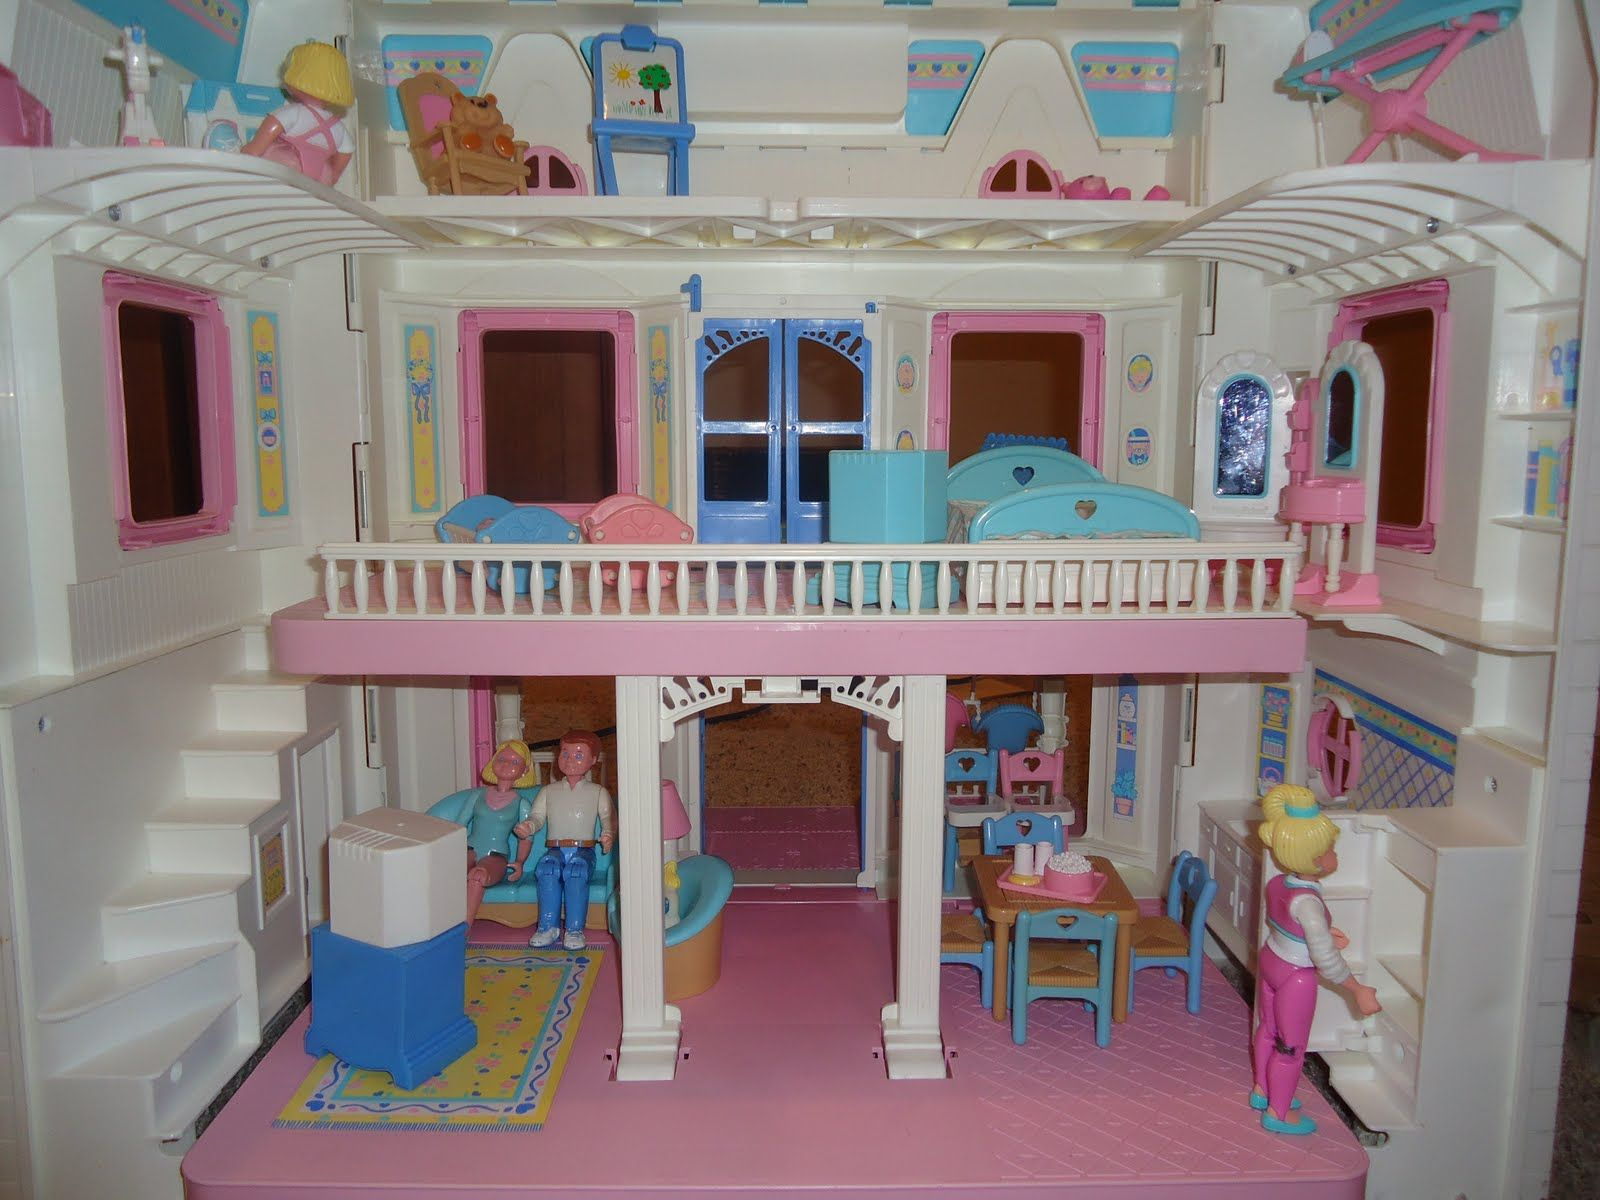 Fisher price doll house furniture - Fisher Price Doll House I Loved My Doll House